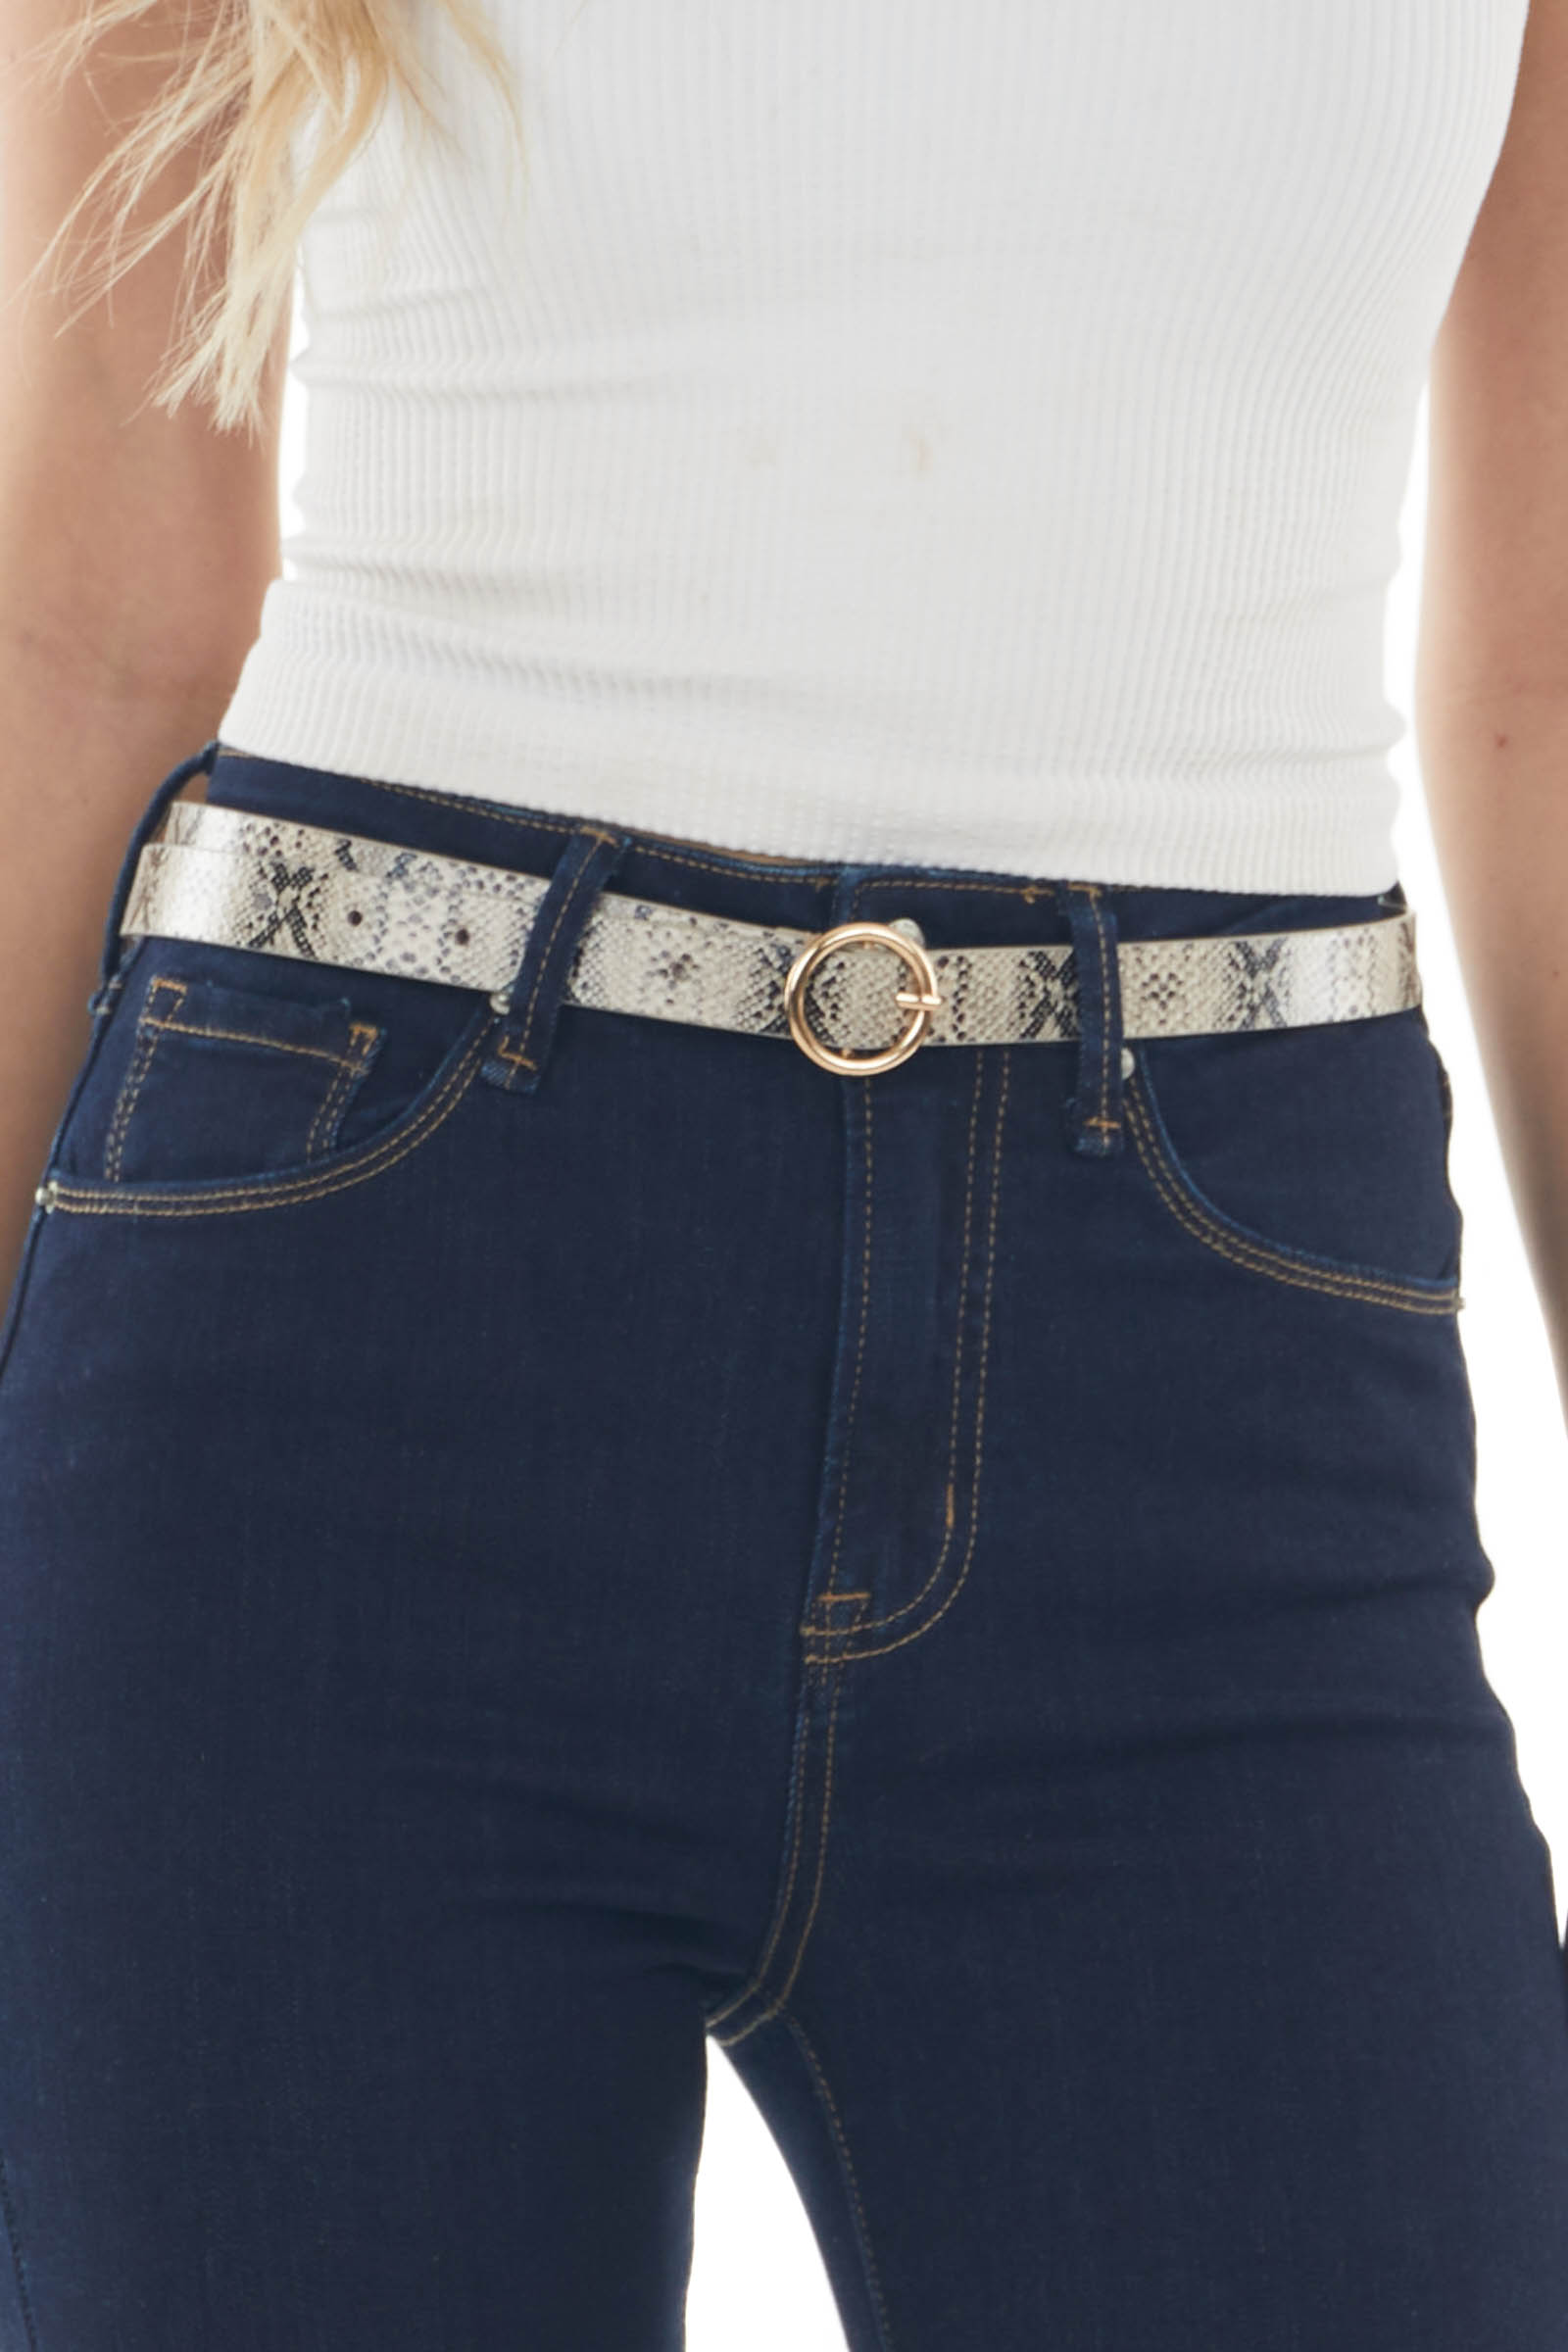 Latte Snake Print Belt with Gold Ring Buckle